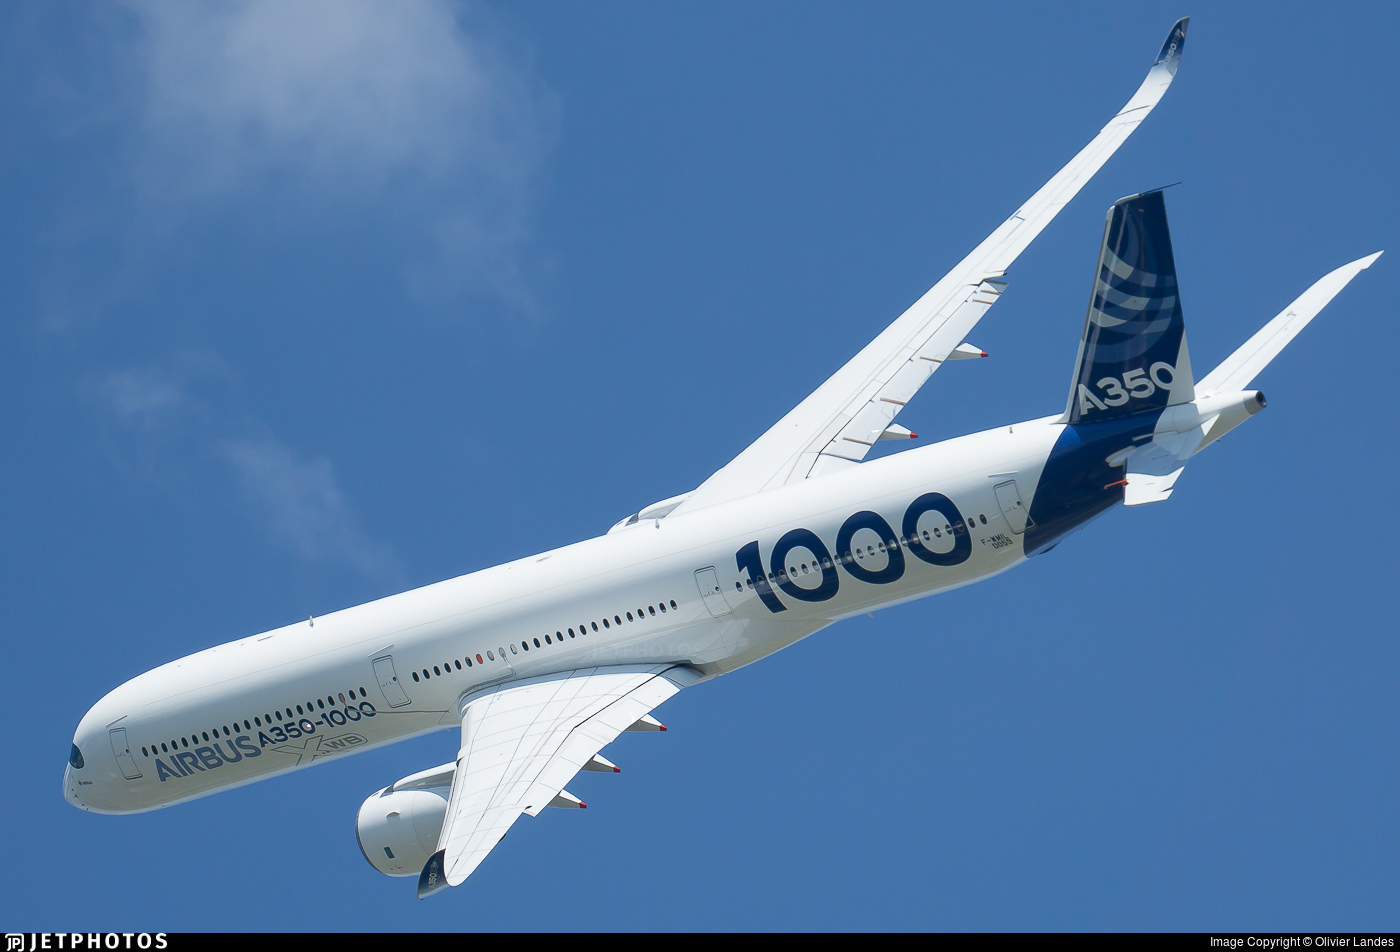 Airbus A350-1000 performing at the 2019 Paris Air Show